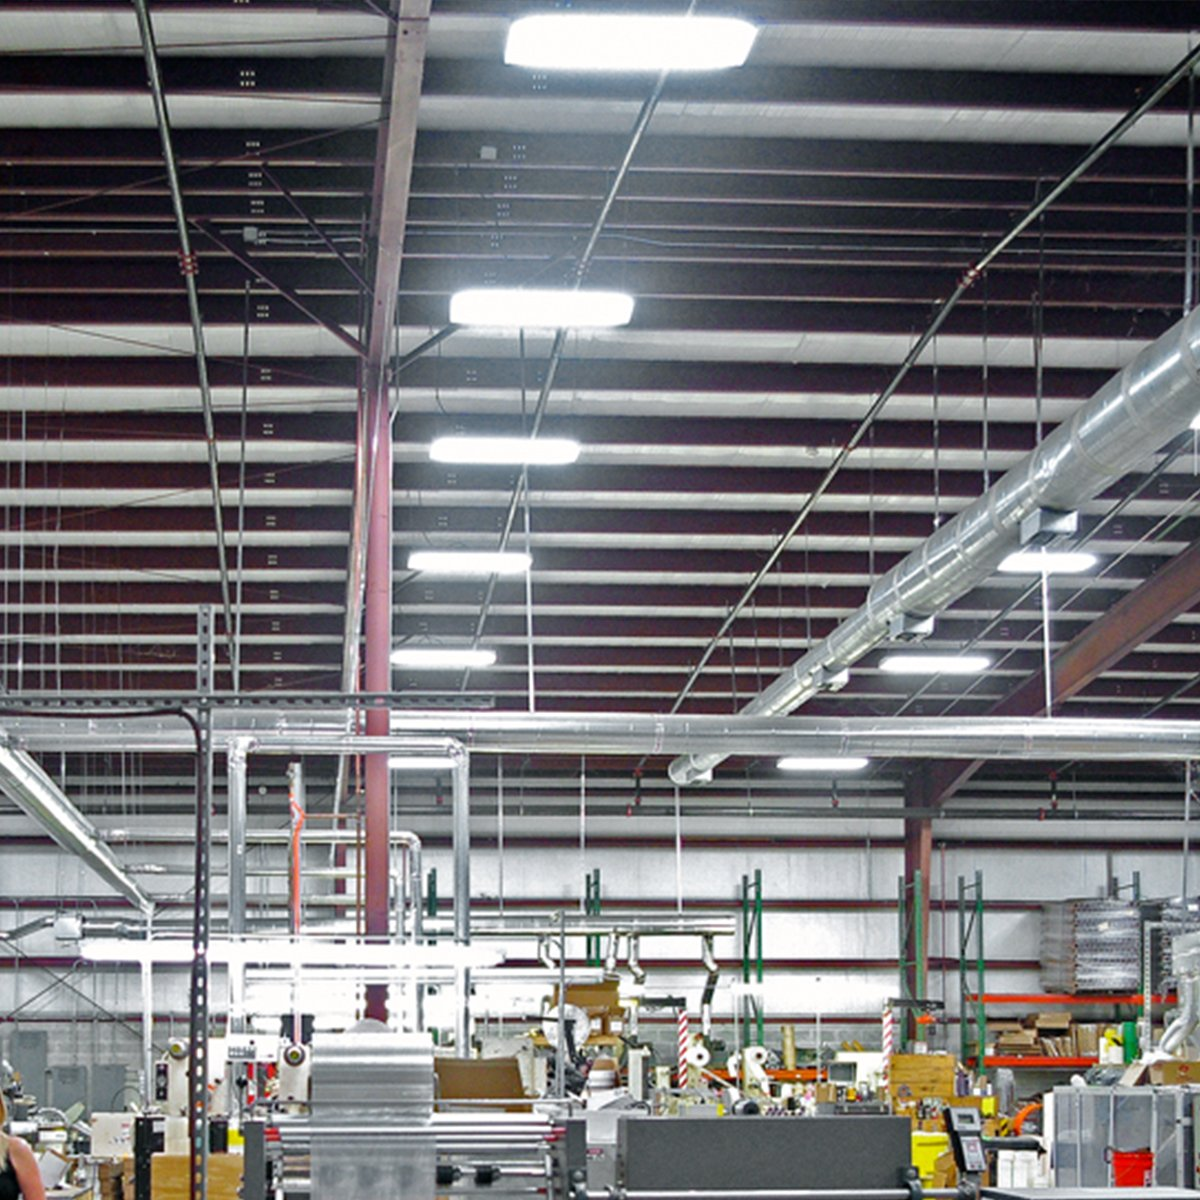 LED High Bay Light,140W 0-10V Dimmable [300W-450 Equivalent] 20250lm 5000K Daylight IP65 Waterproof Industrial Grade Warehouse Hanging Light Workshop Lamp cETLus Listed-140W-1Pack-L